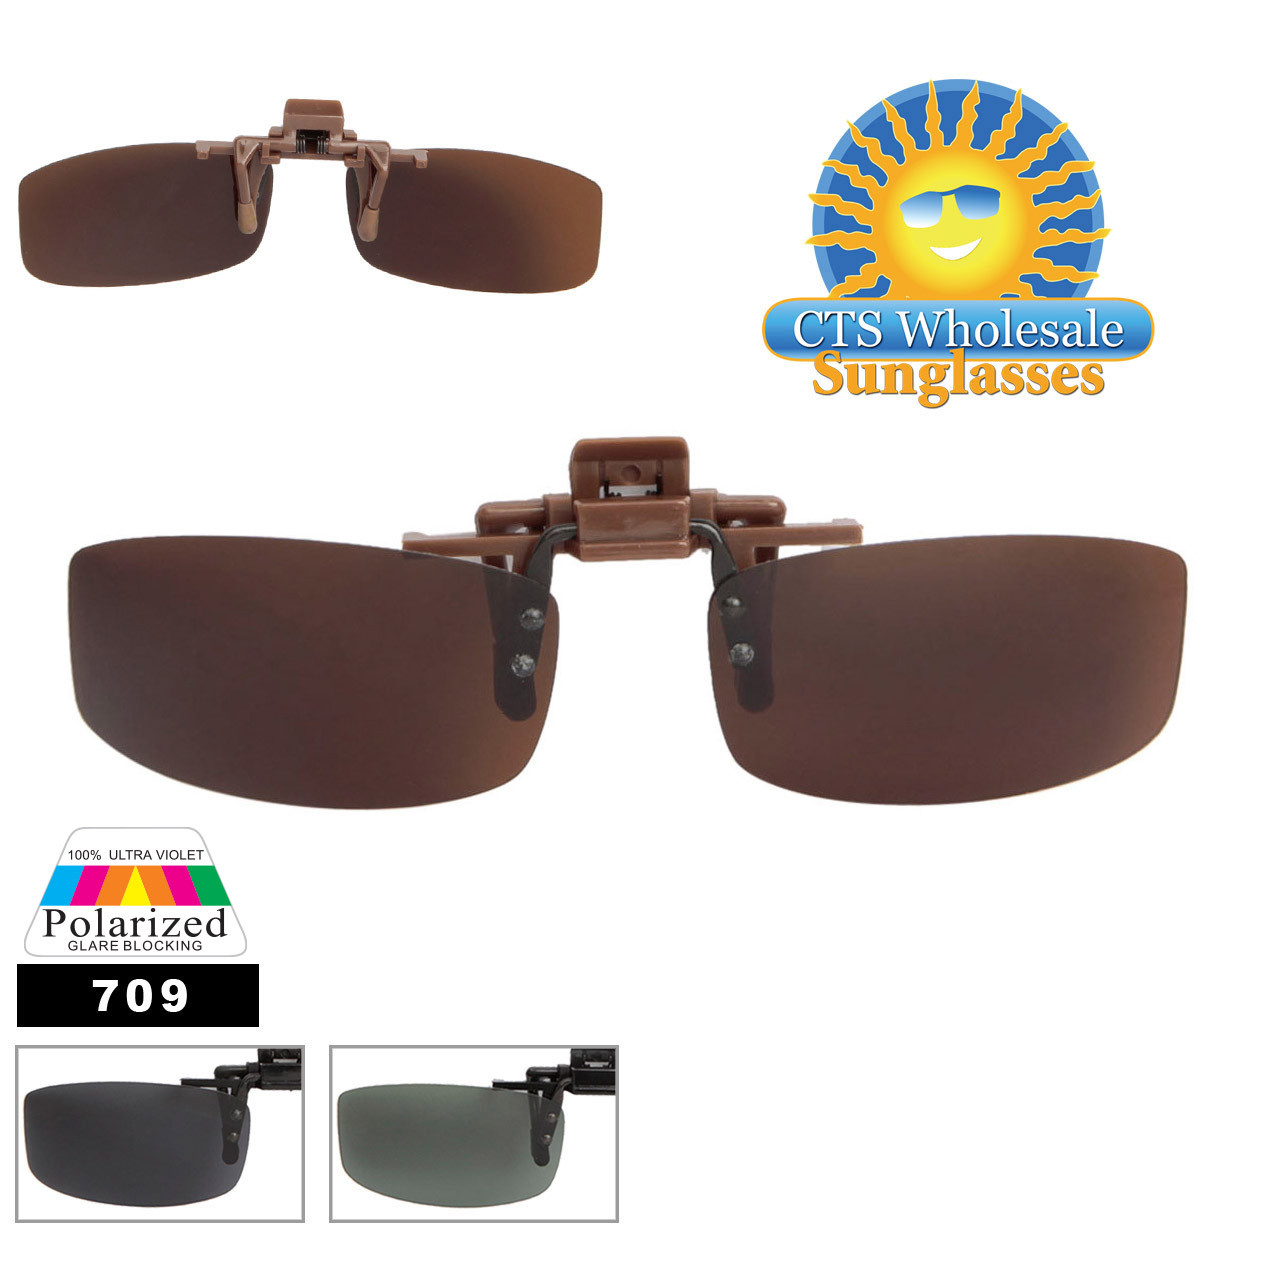 Wholesale Polarized Clip On Sunglasses 709